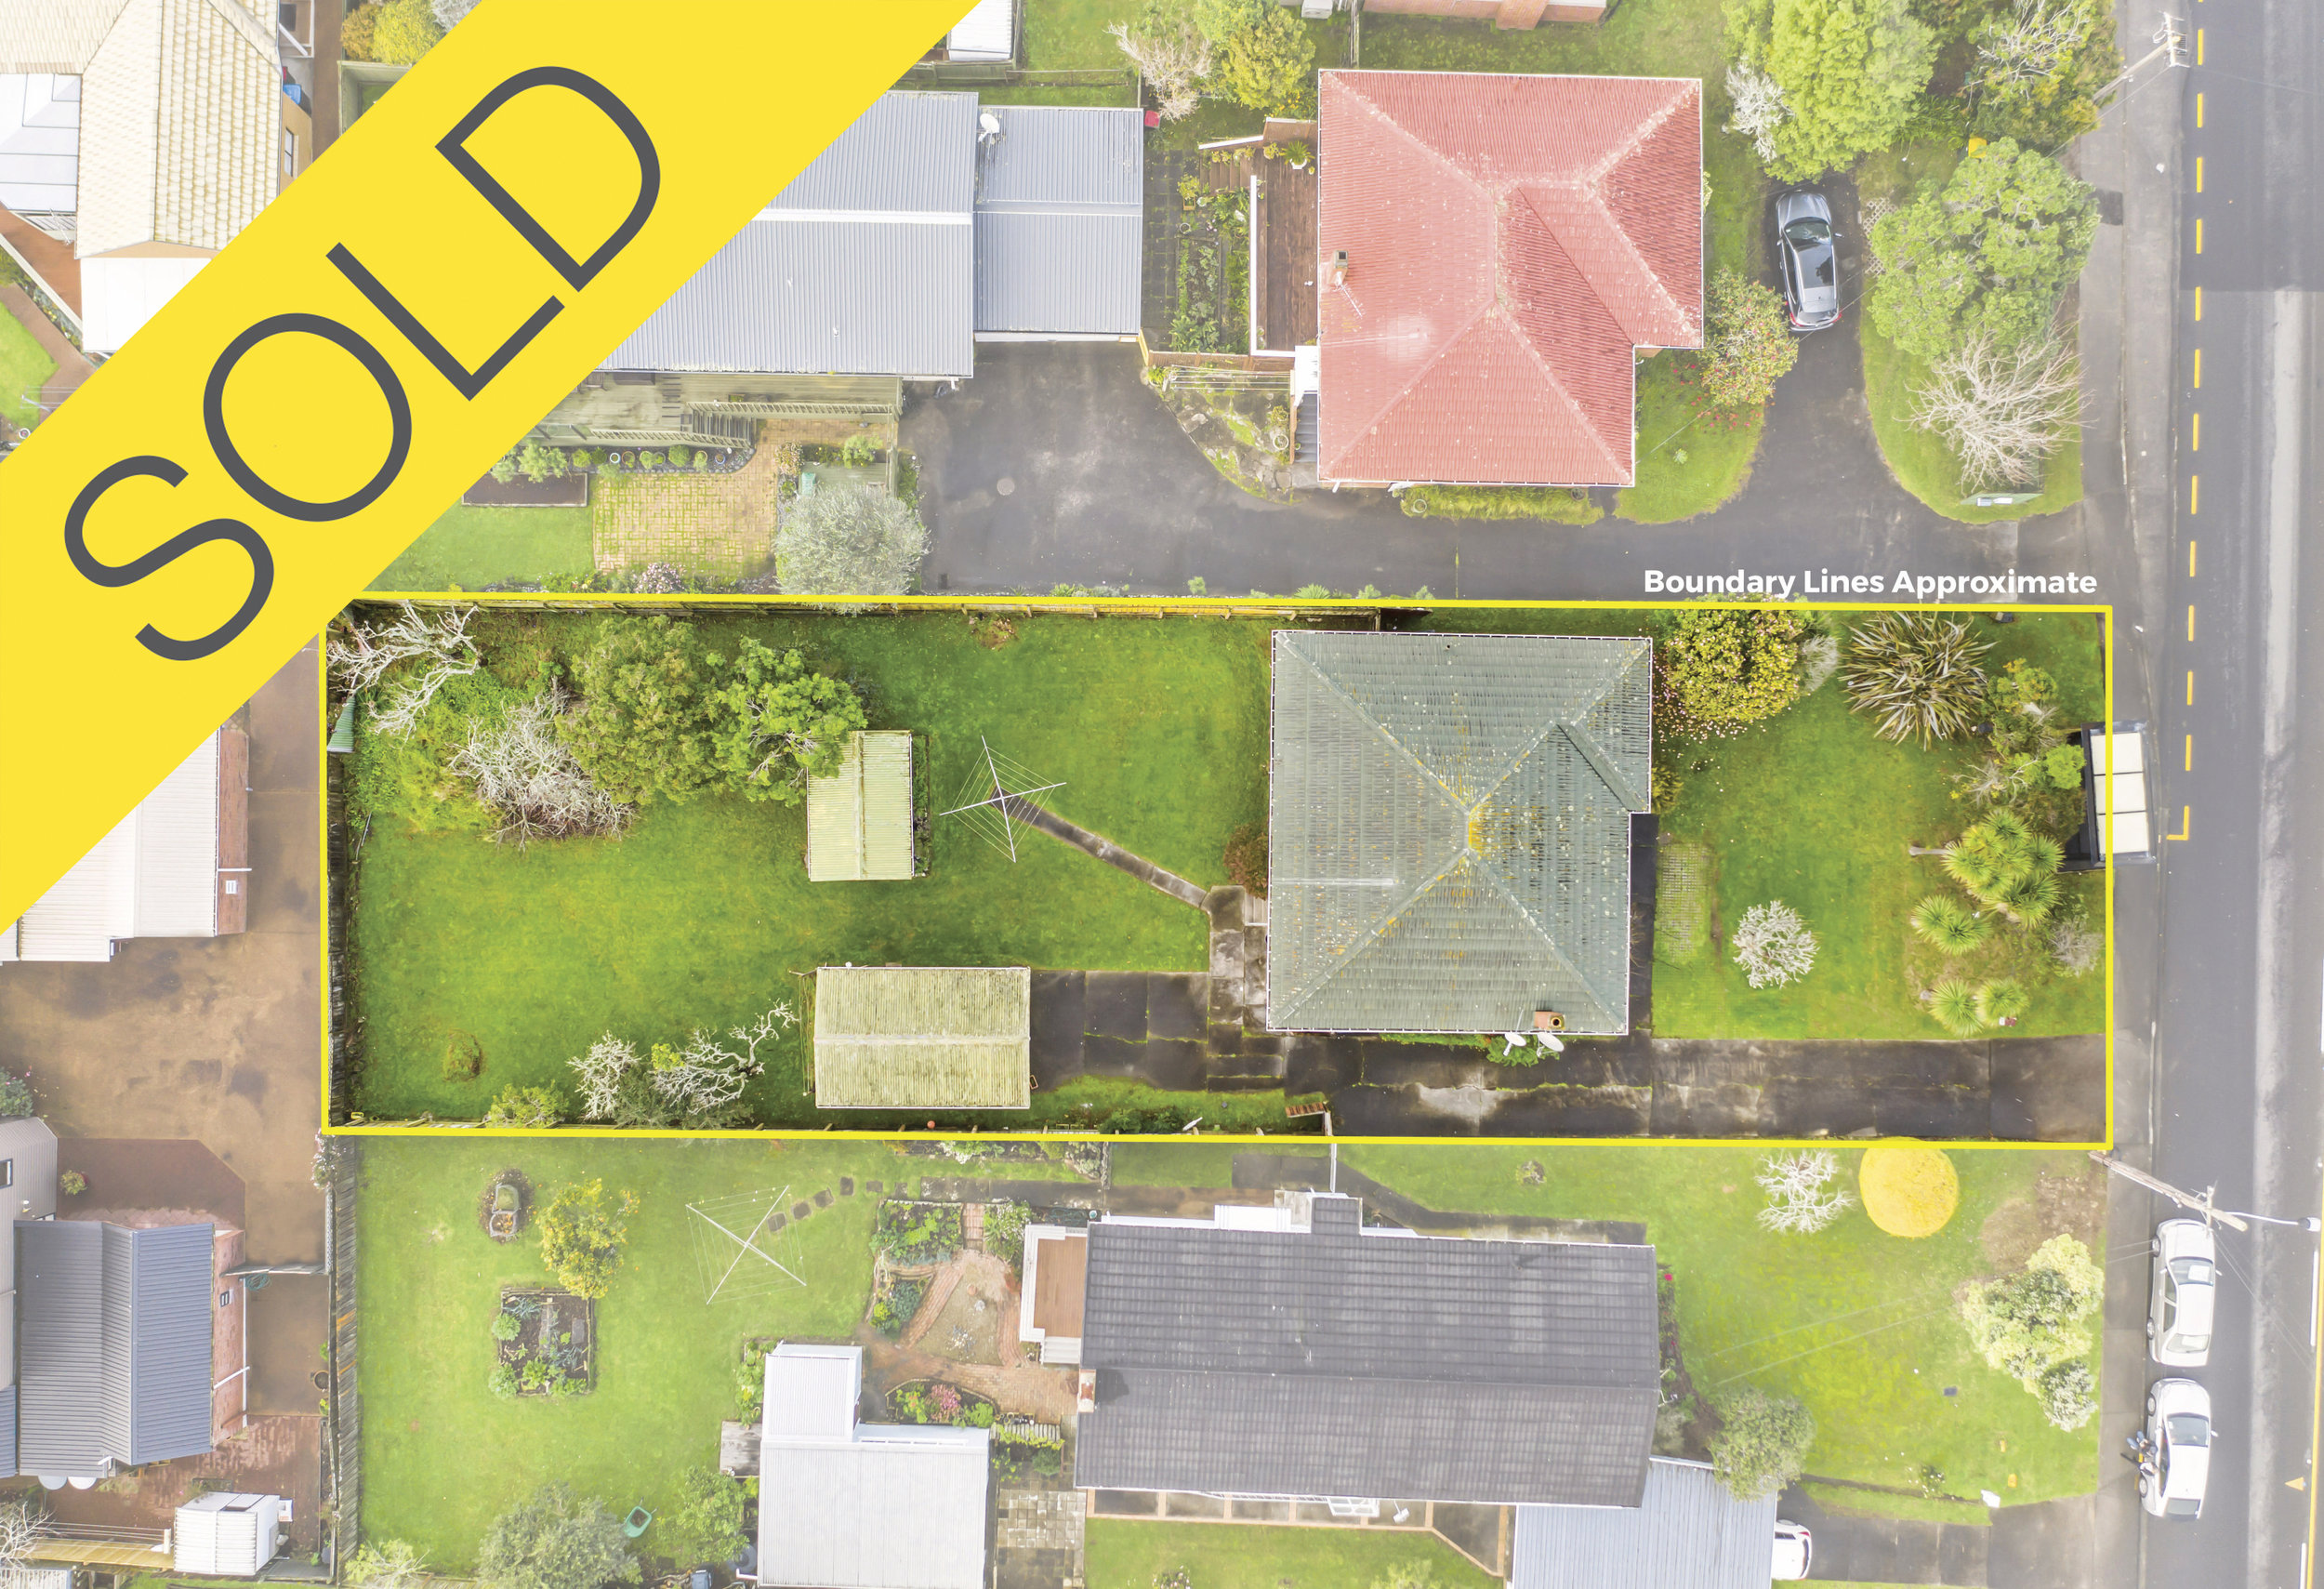 563 Hillsborough Road, Mt Roskill, Auckland - SOLD AUGUST 20193 Beds I 1 Bath I 3 Cars